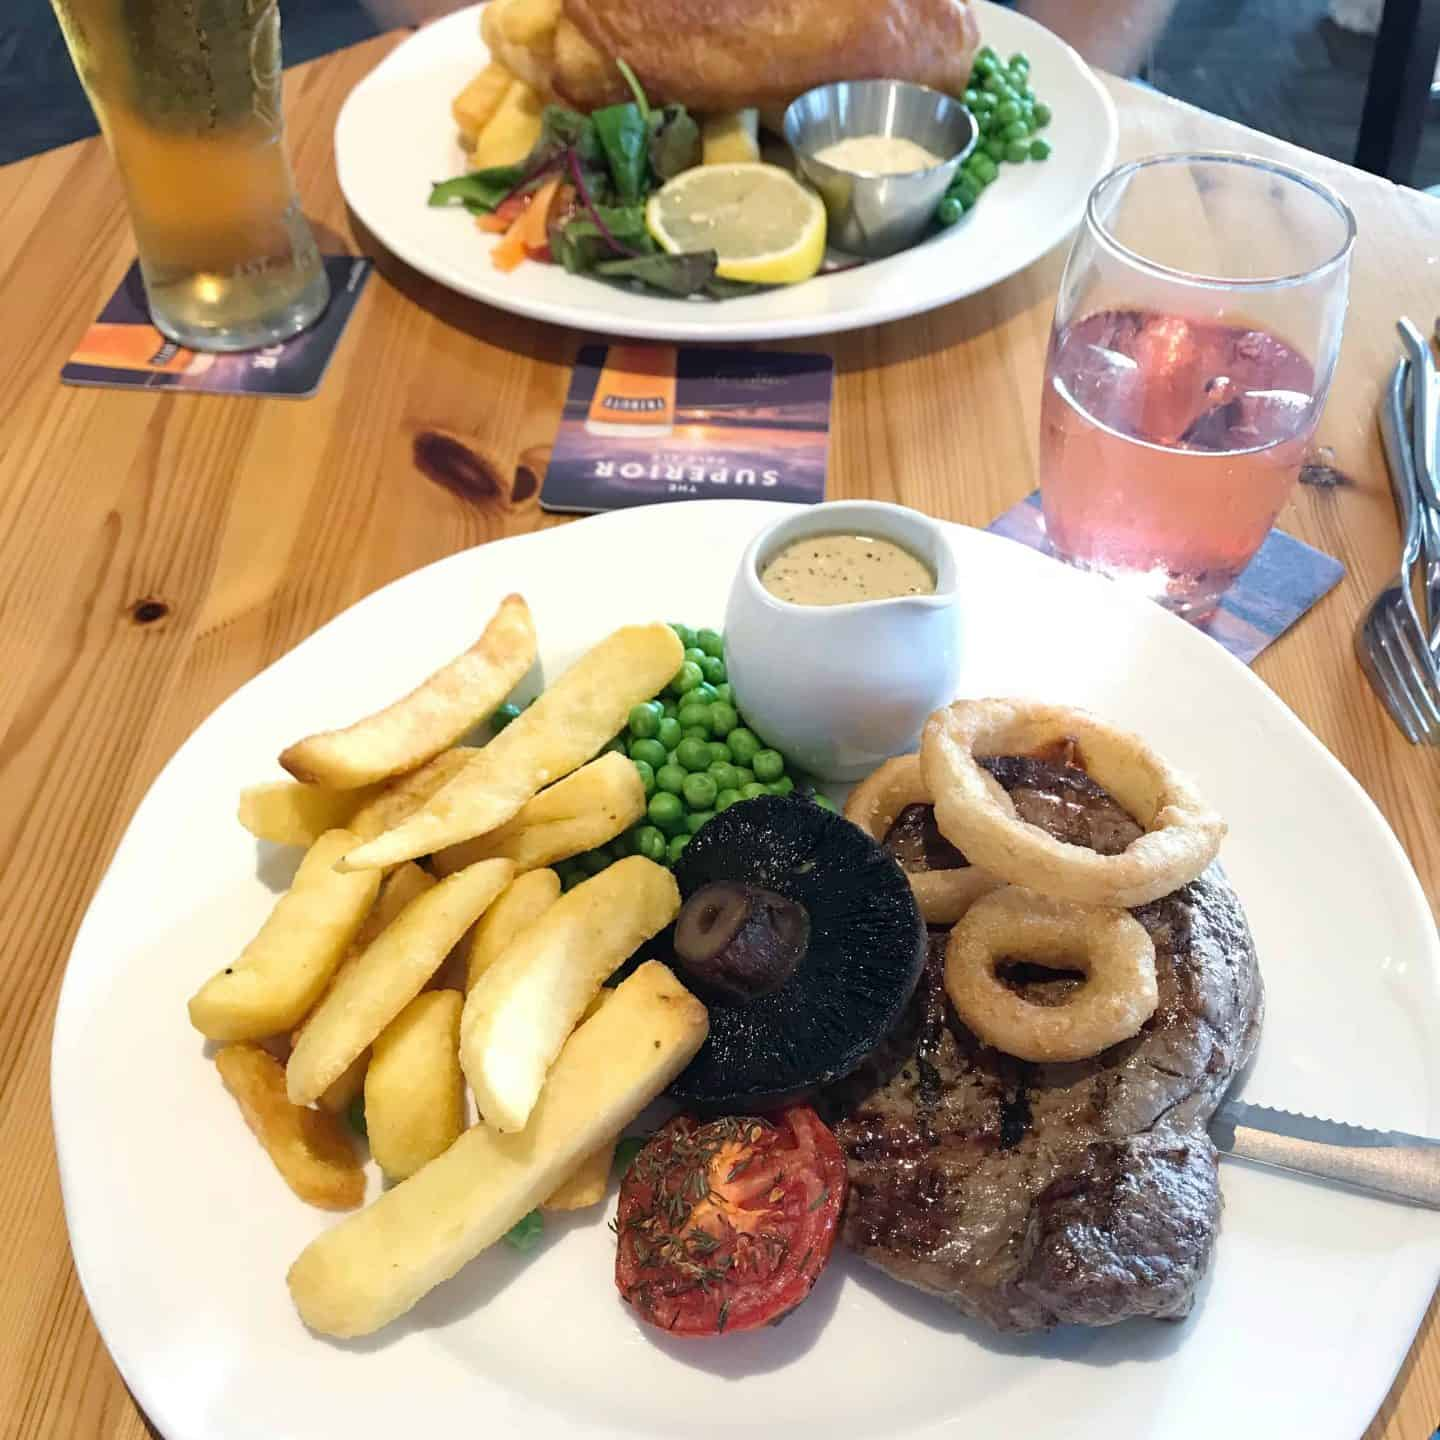 Steak and fish and chips from Woody's at Trevornick, near Newquay, Cornwall